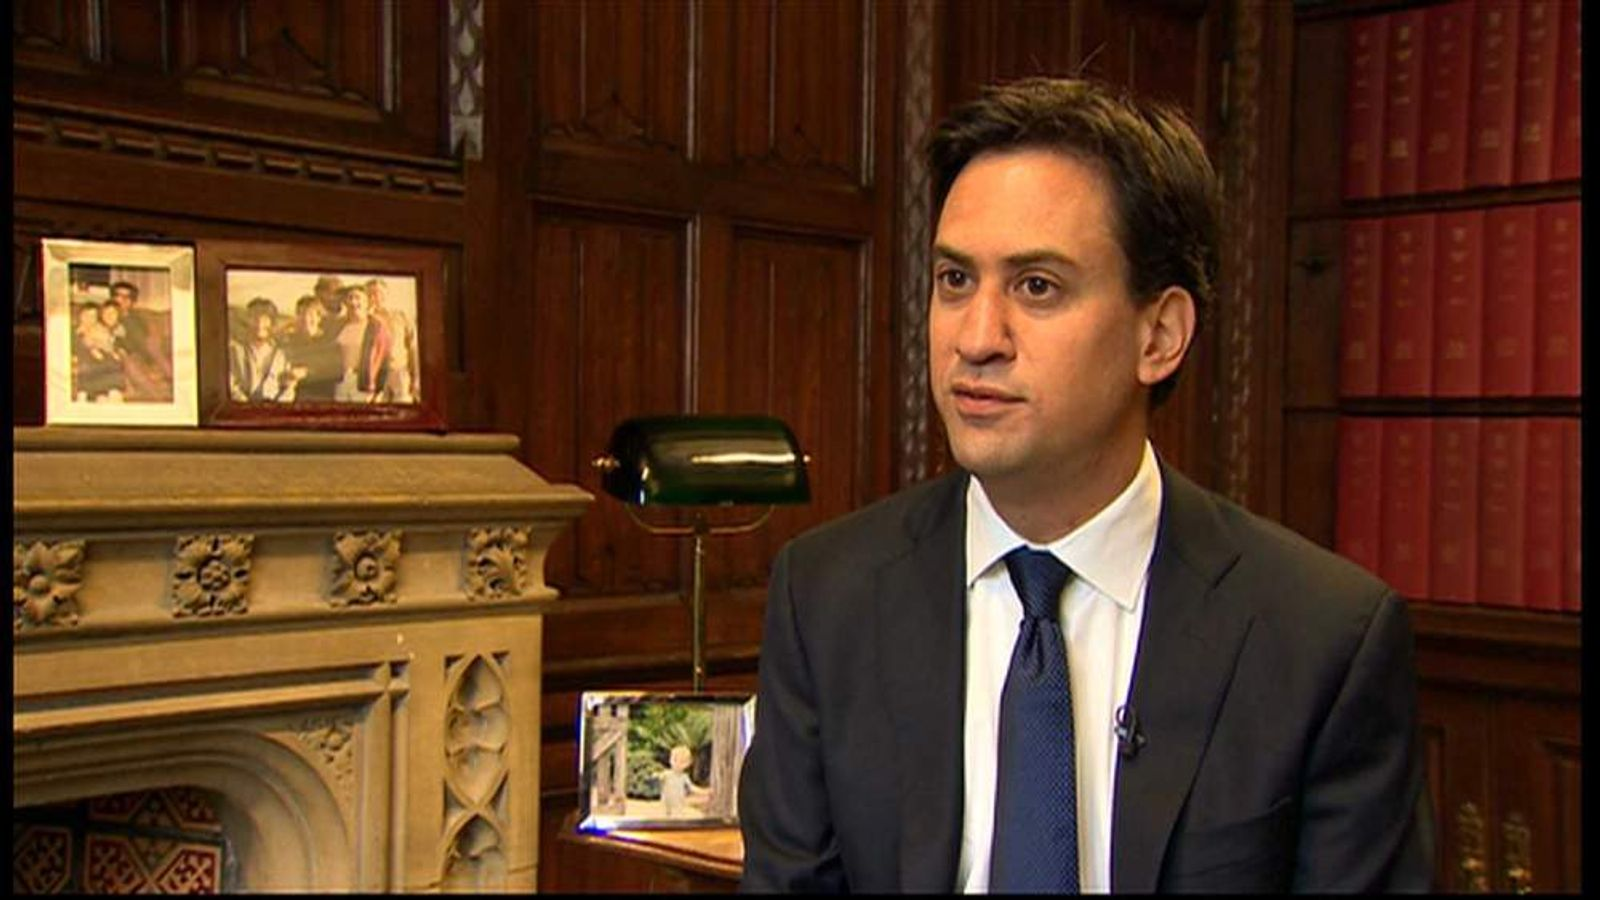 Ed Miliband talks about his family